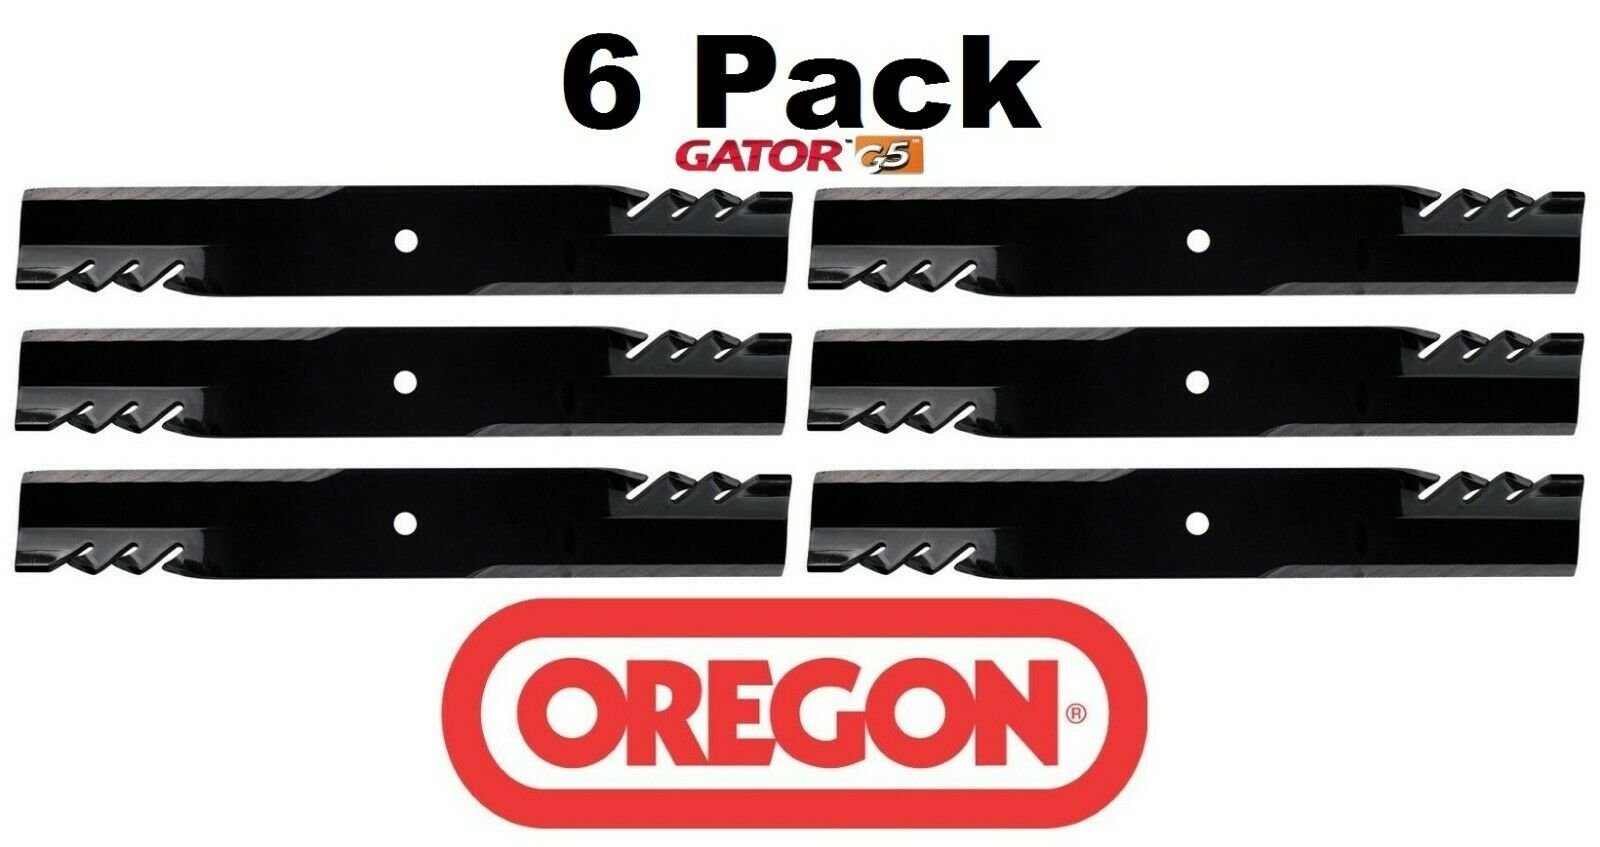 3 Pack Oregon 396-712 G6 Gator Mulch Blade Fits 320242 320243 320244 320245